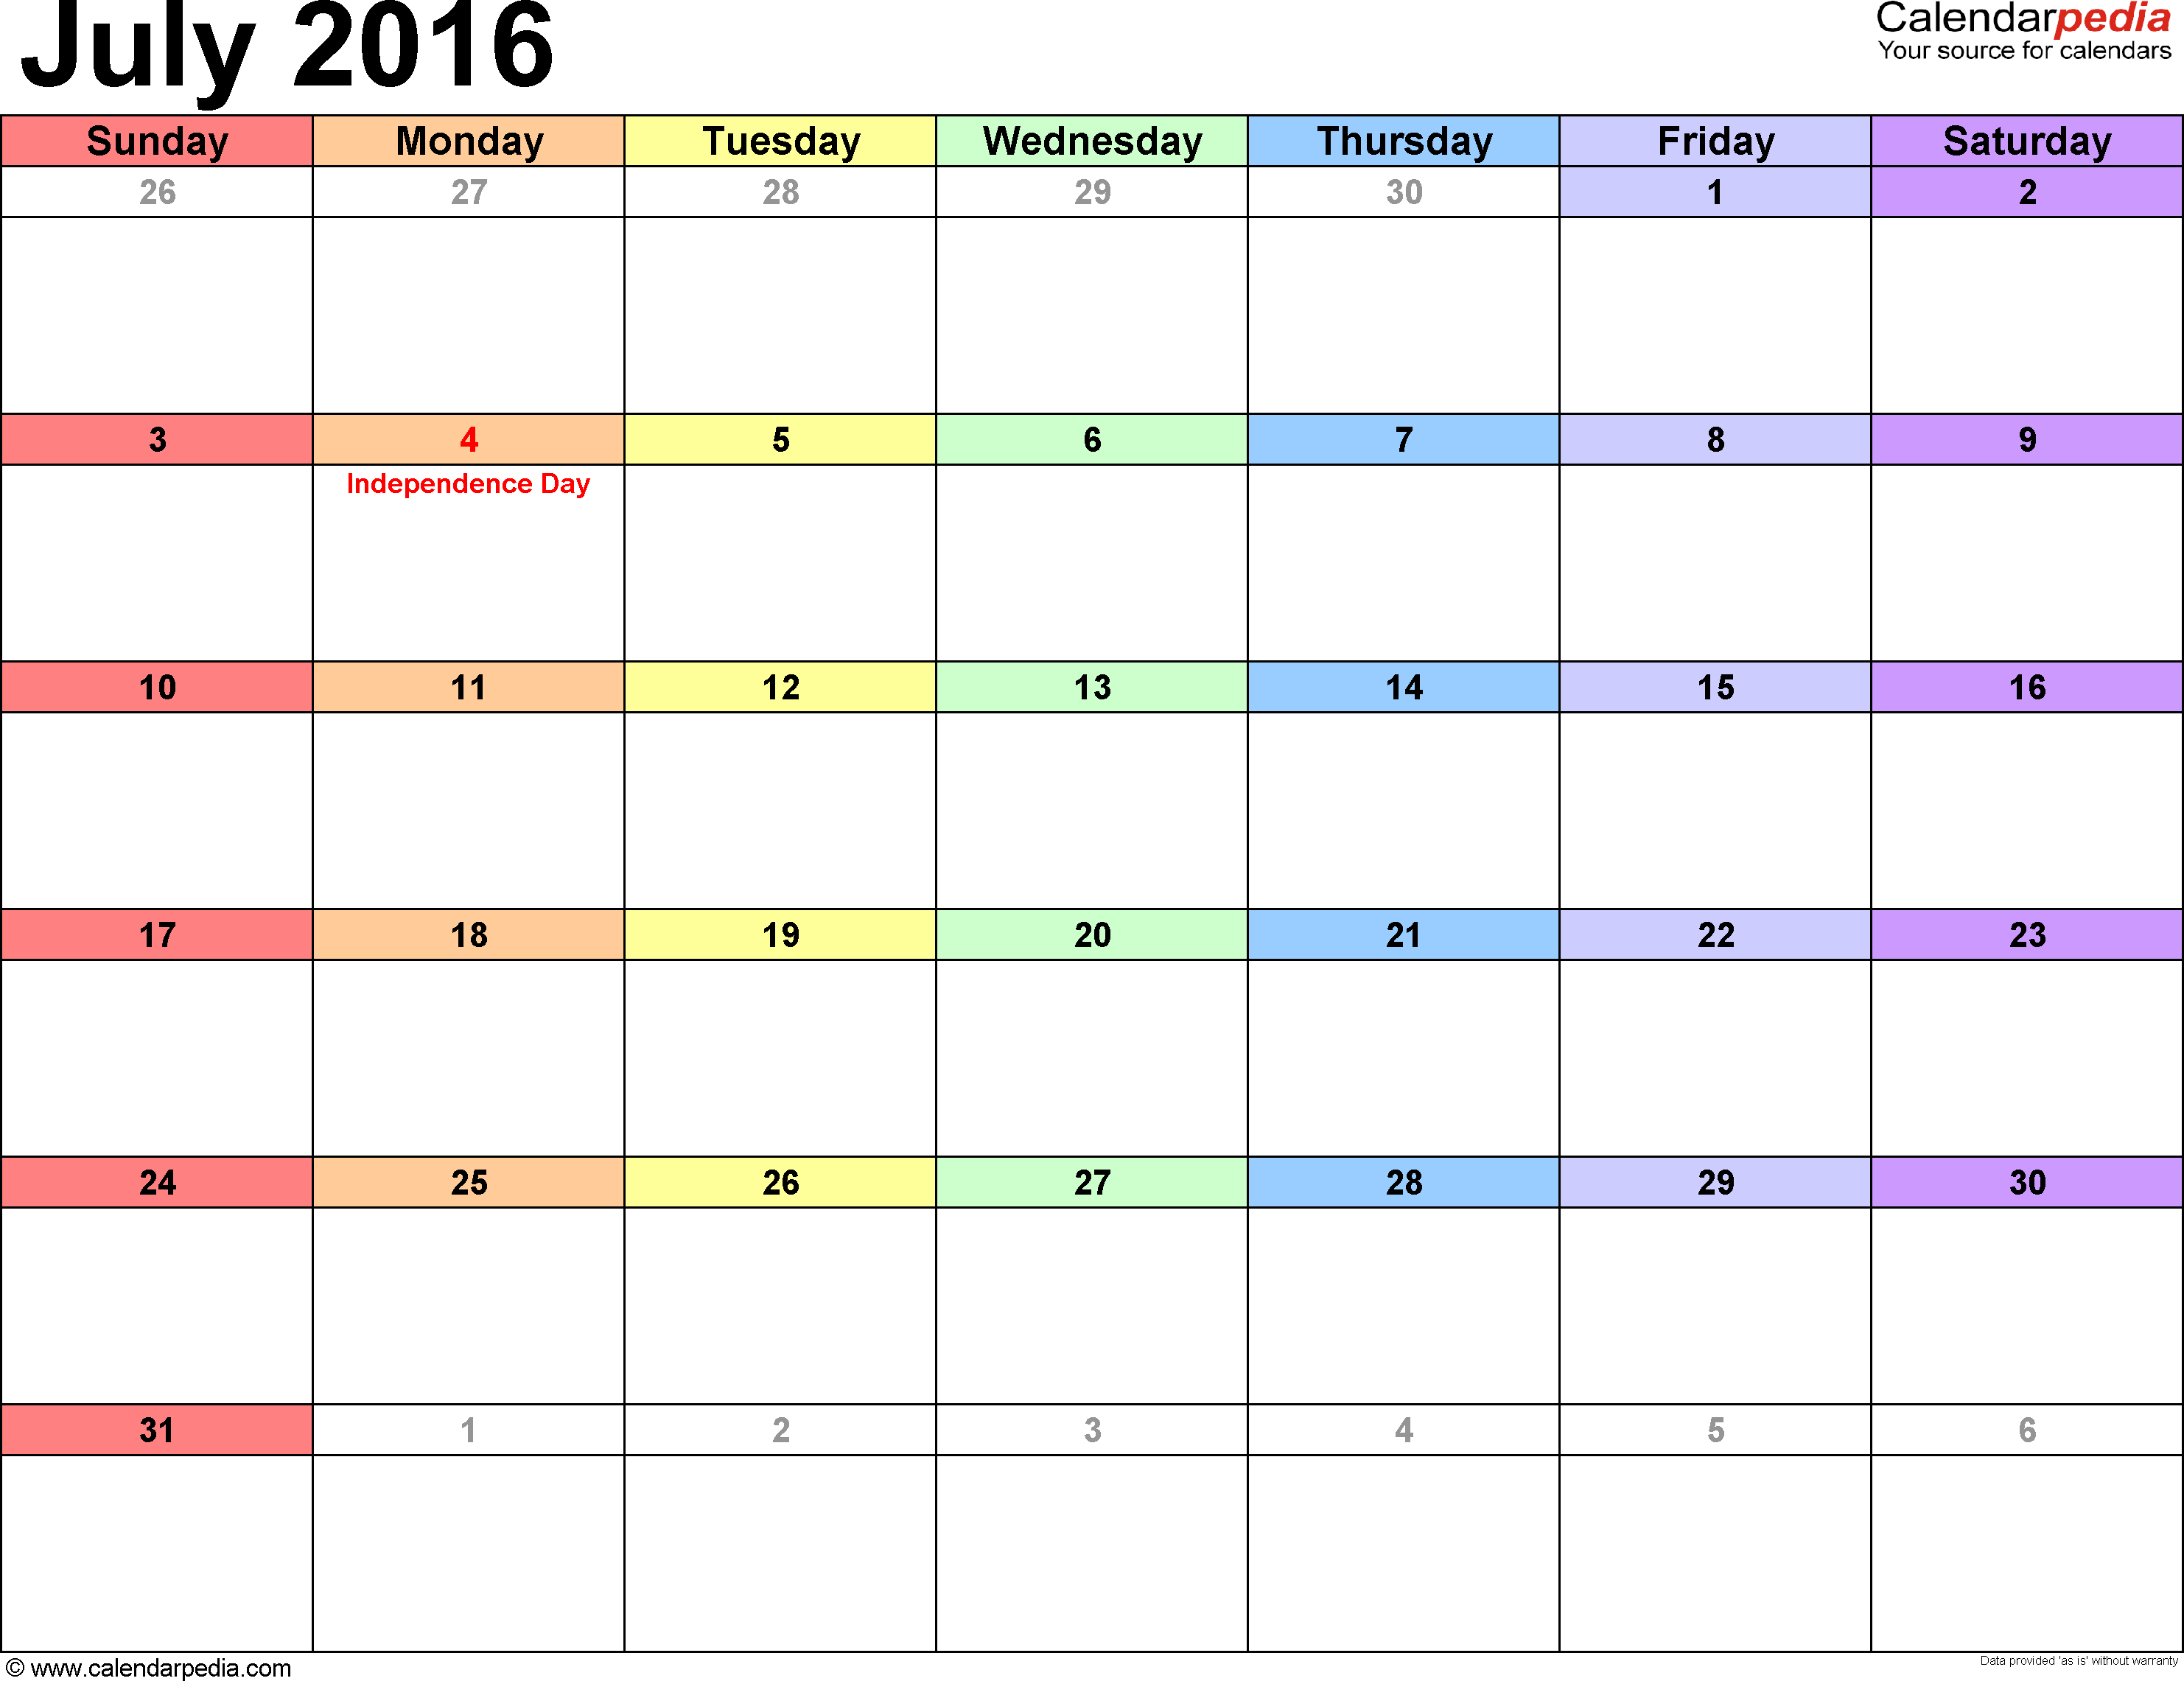 July 2016 Calendars For Word, Excel & Pdf pertaining to Printable Weekly Calendar Template July